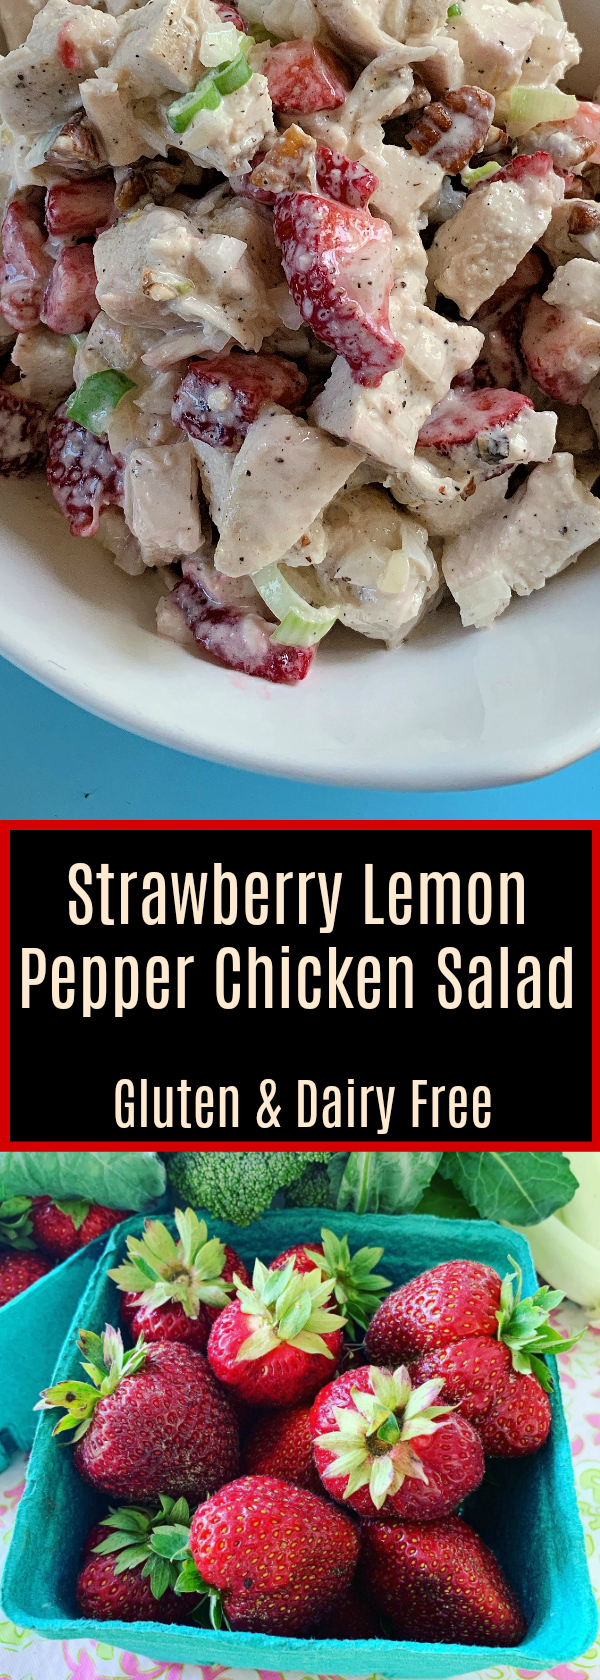 Strawberry Lemon Pepper Chicken Salad for Summer..jpg